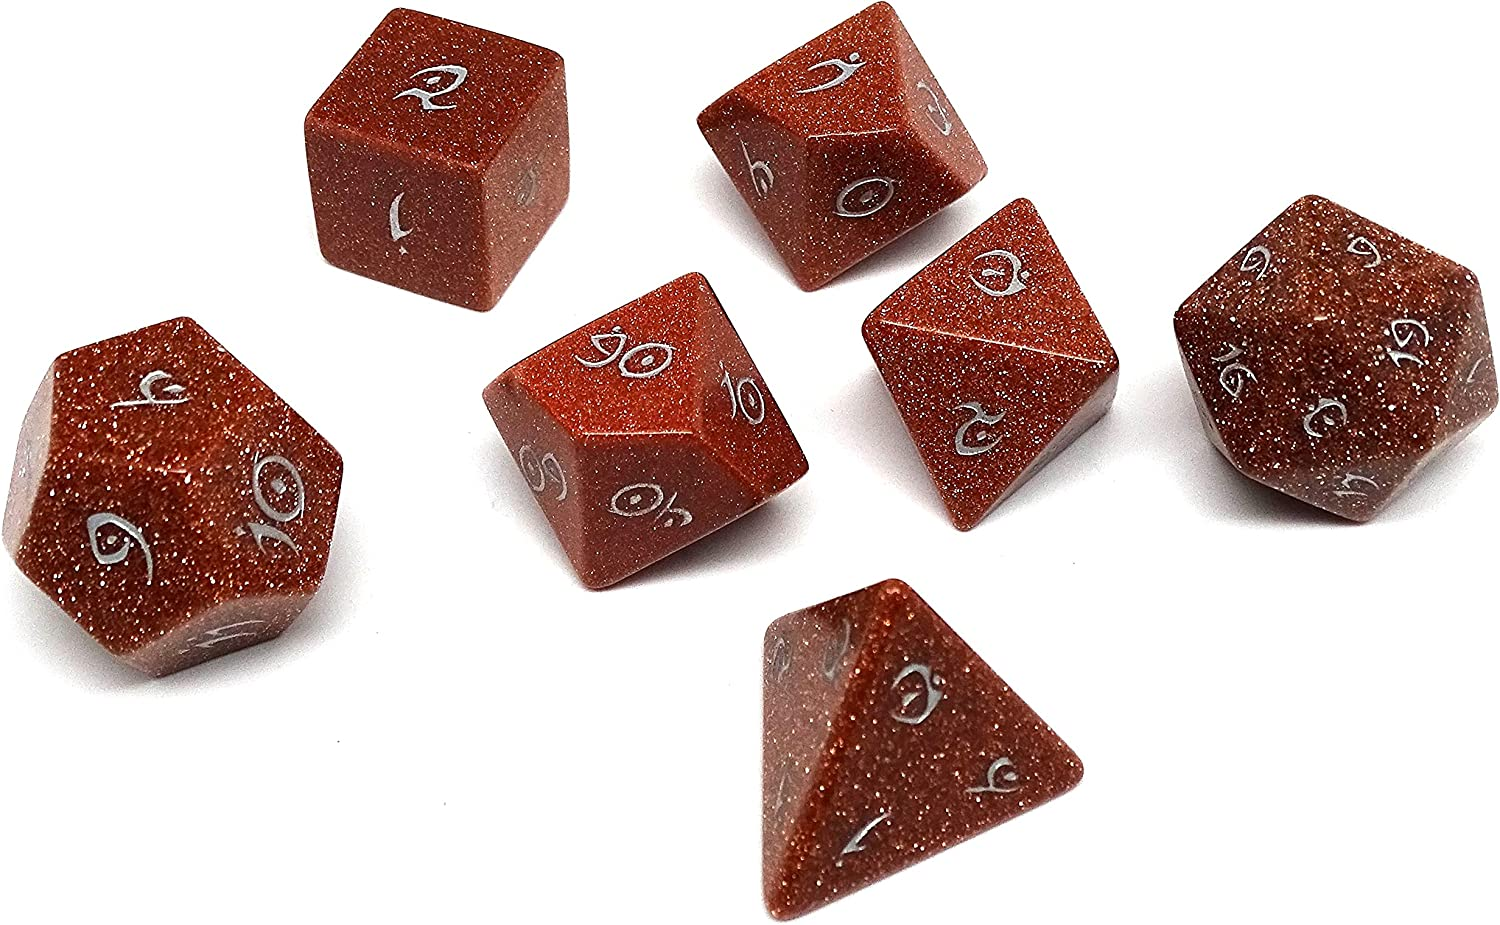 7 Piece Collection of Semi Precious Stone Dice with Elvenkind Font ...